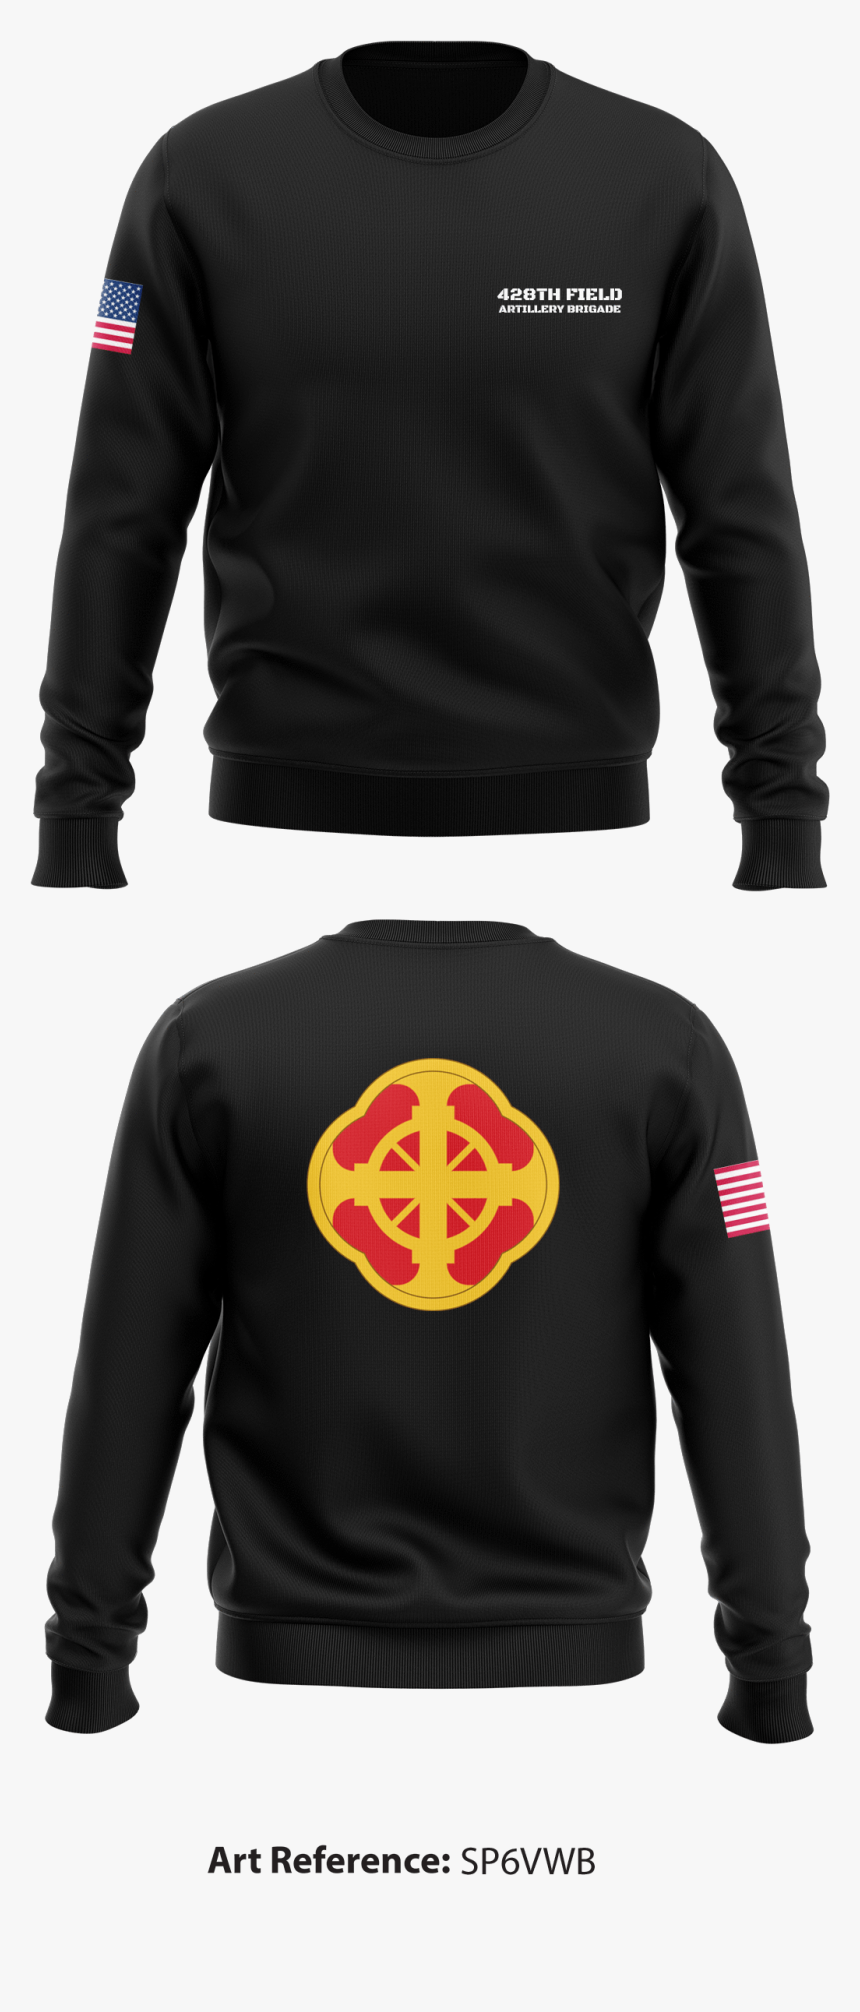 428th Field Artillery Brigade Crew Neck Sweatshirt - Task Force 2 Panther Shirt, HD Png Download, Free Download